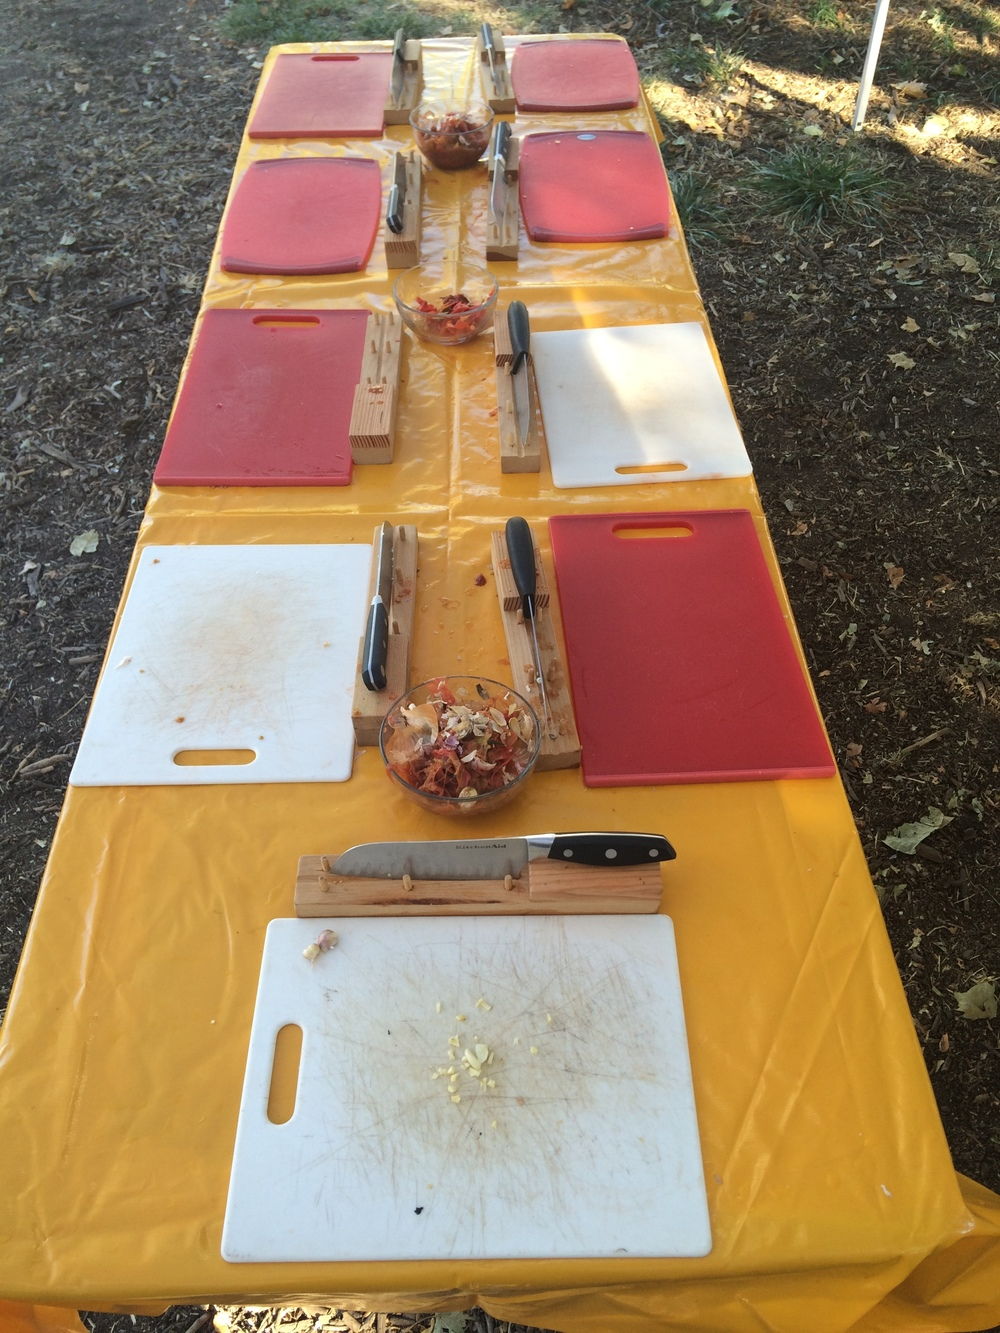 Students learn knife skills in the outdoor kitchen